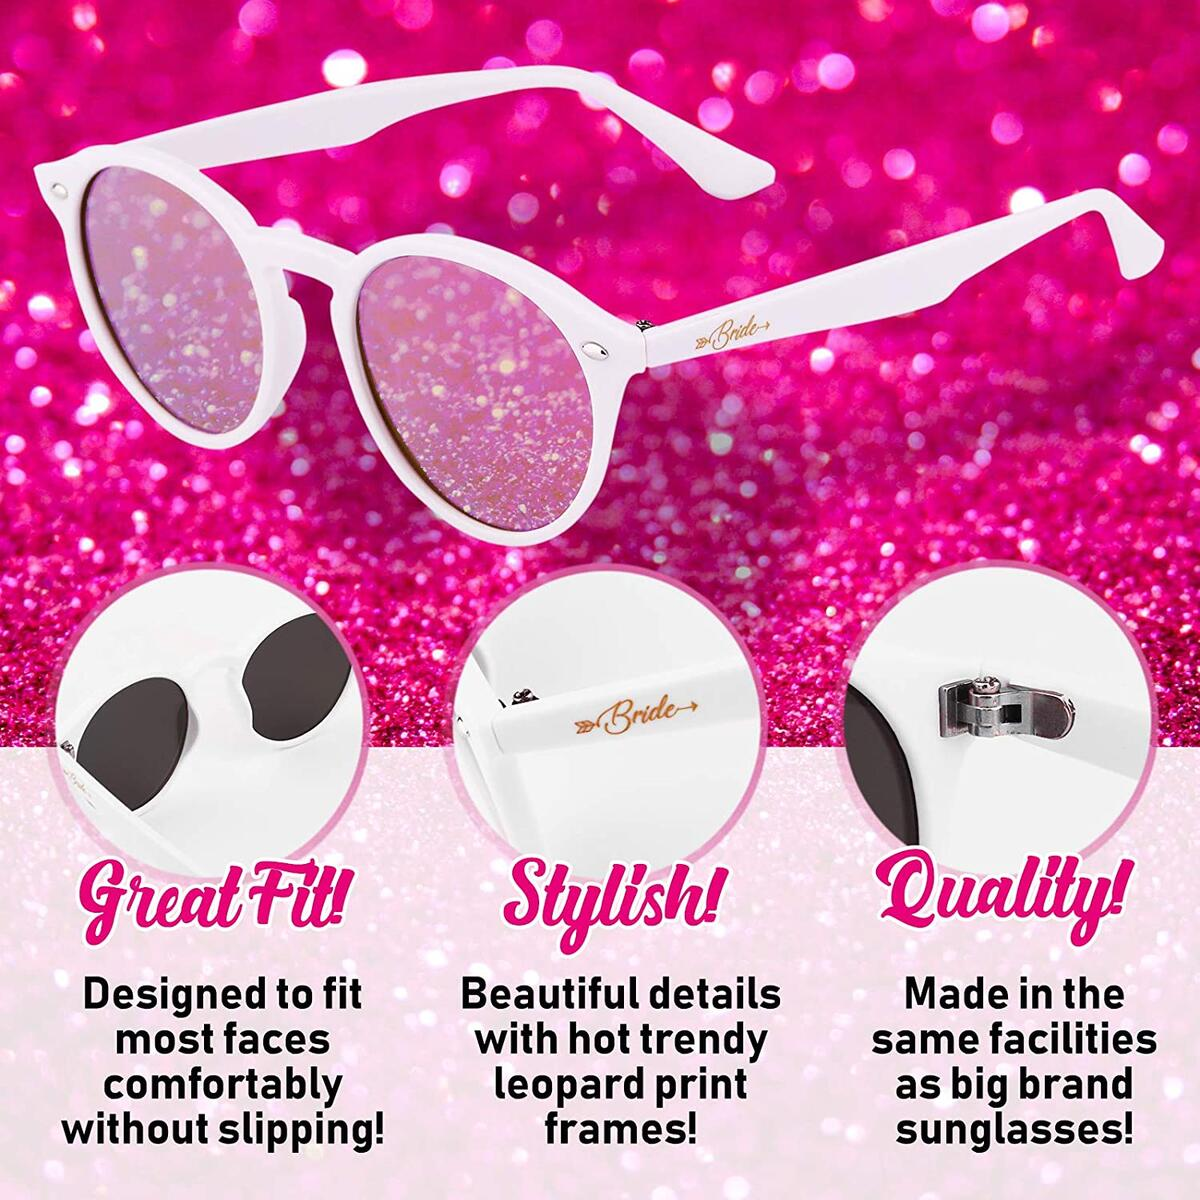 Bachelorette Party Sunglasses Bride Tribe Rose Gold Lens Glasses, Bridal Shower Gift and Favors - Instagram Bachelorette Party Decorations/Supplies (7 Pack Set)